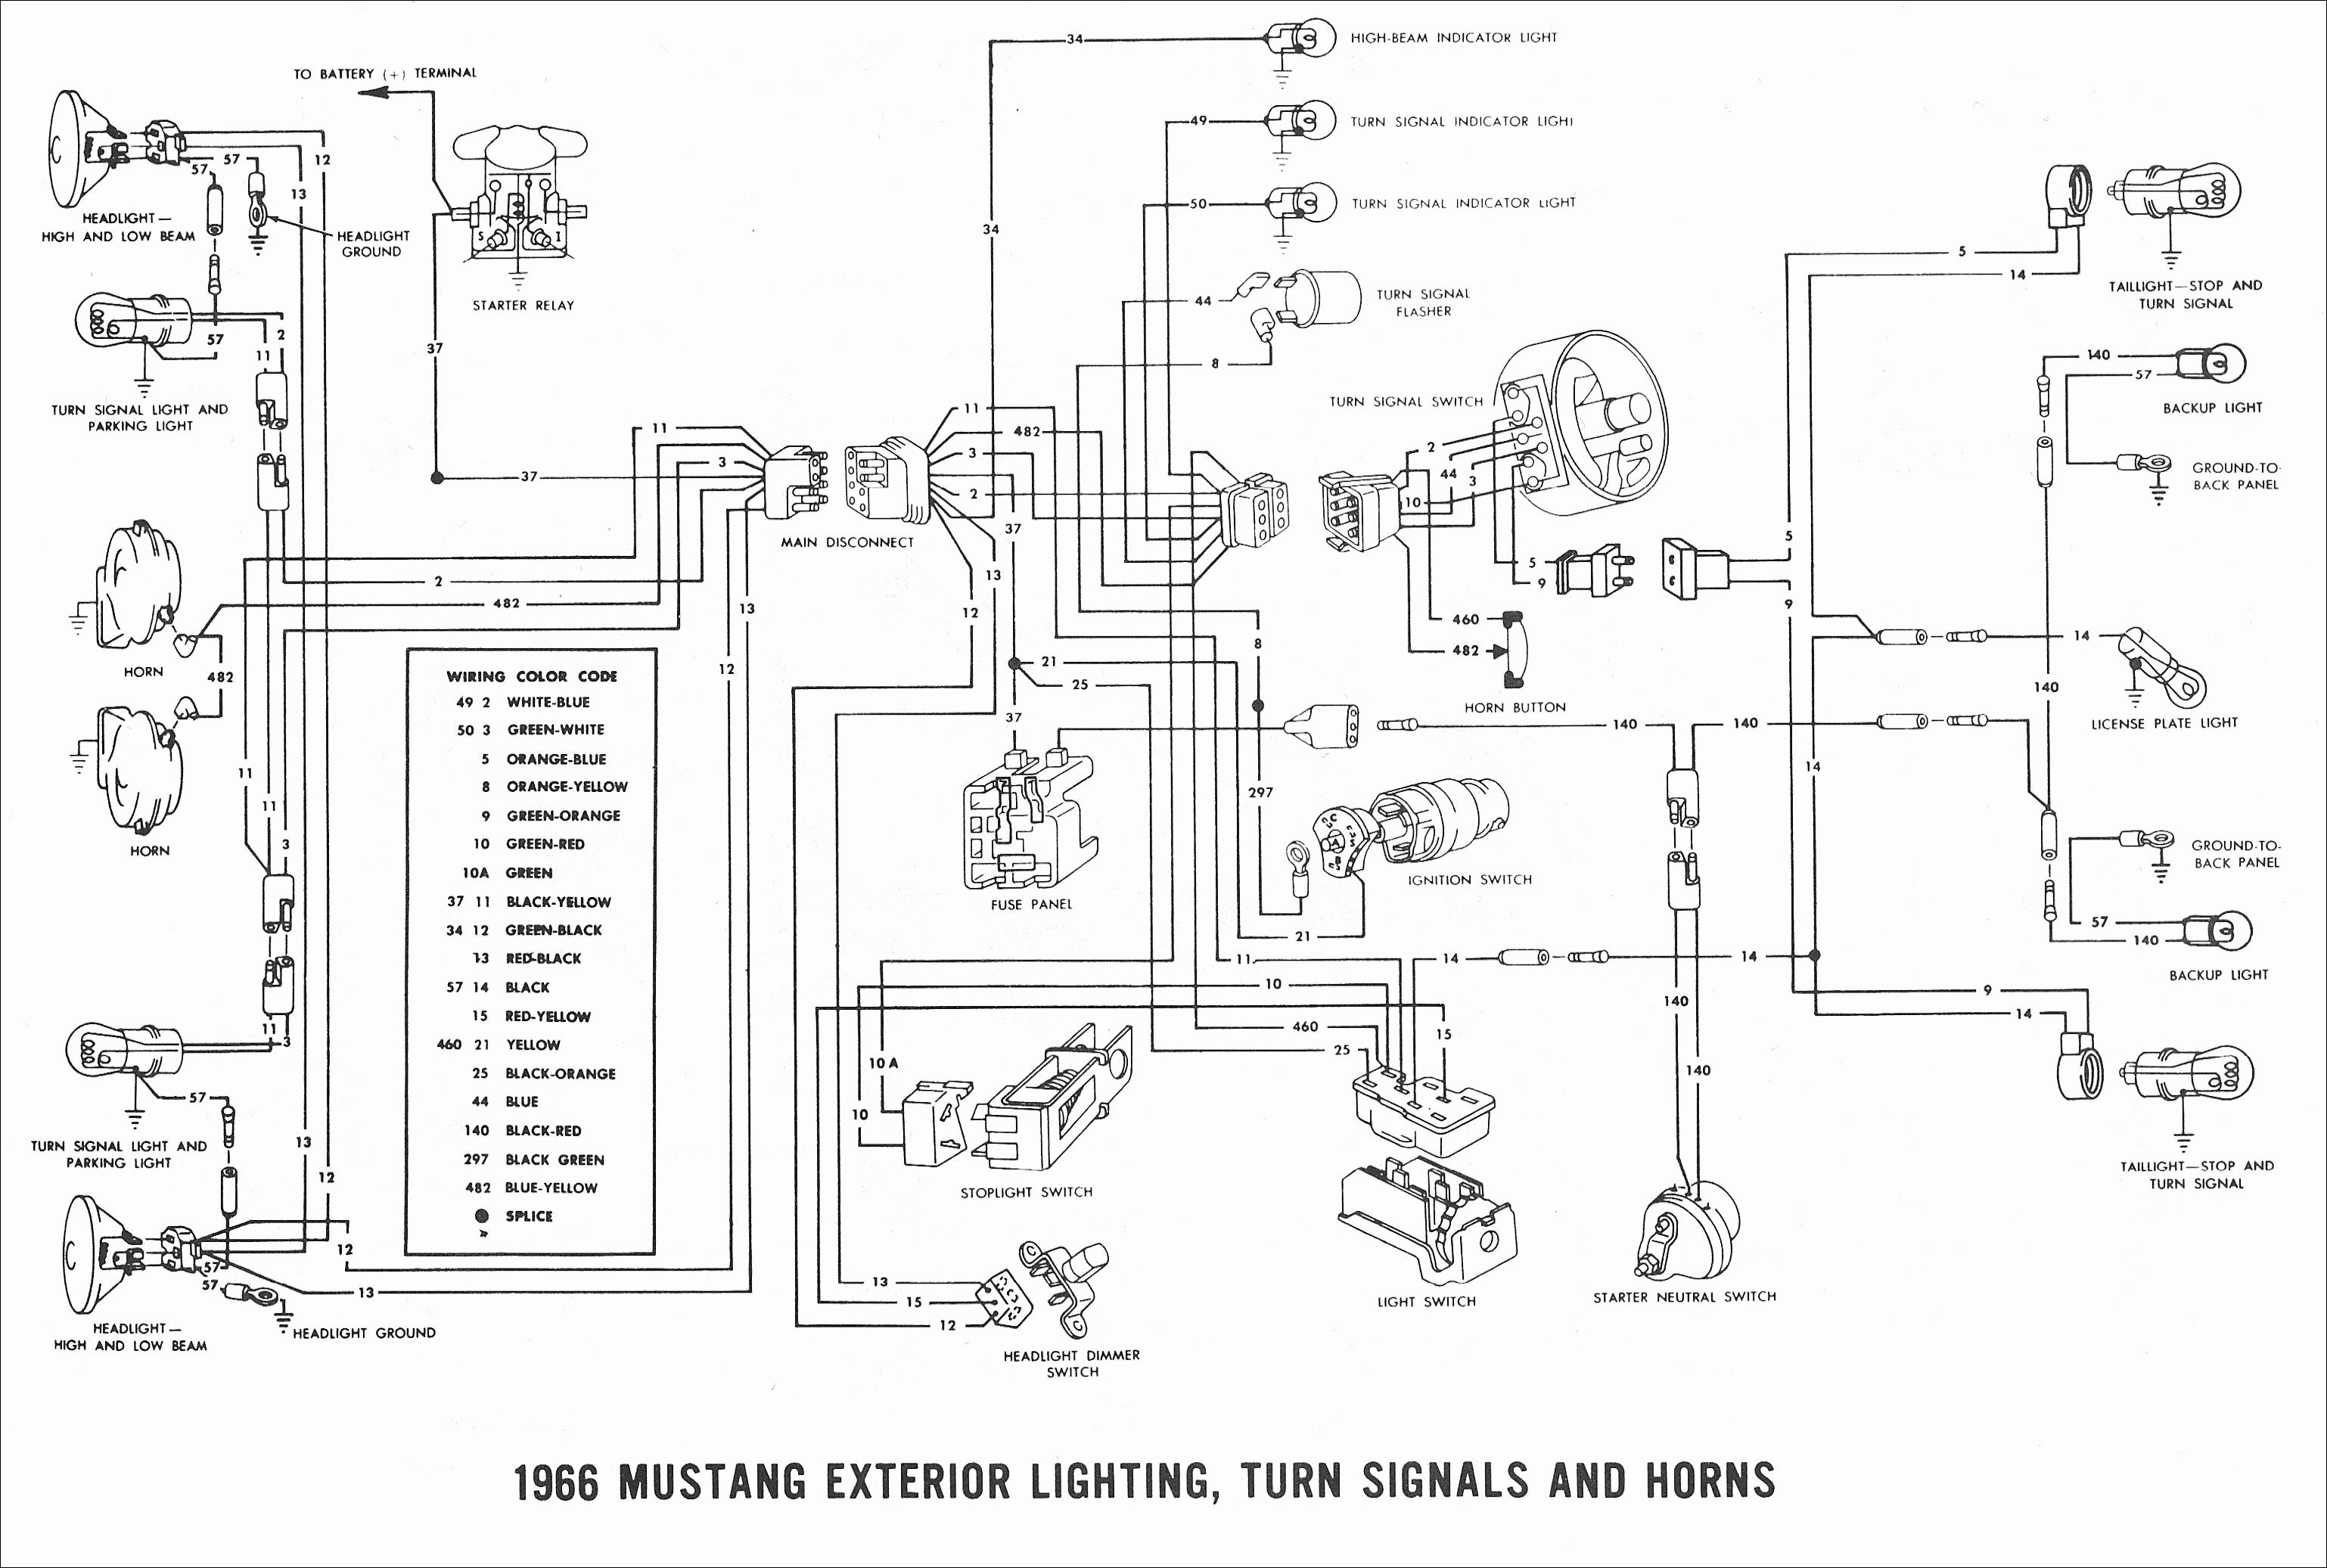 Best Of Wiring Diagram For Fog Lights Without Relay Diagrams Digramssample Diagramimages Wiringdiagramsample Wir Diagram Bmw E46 Electrical Wiring Diagram